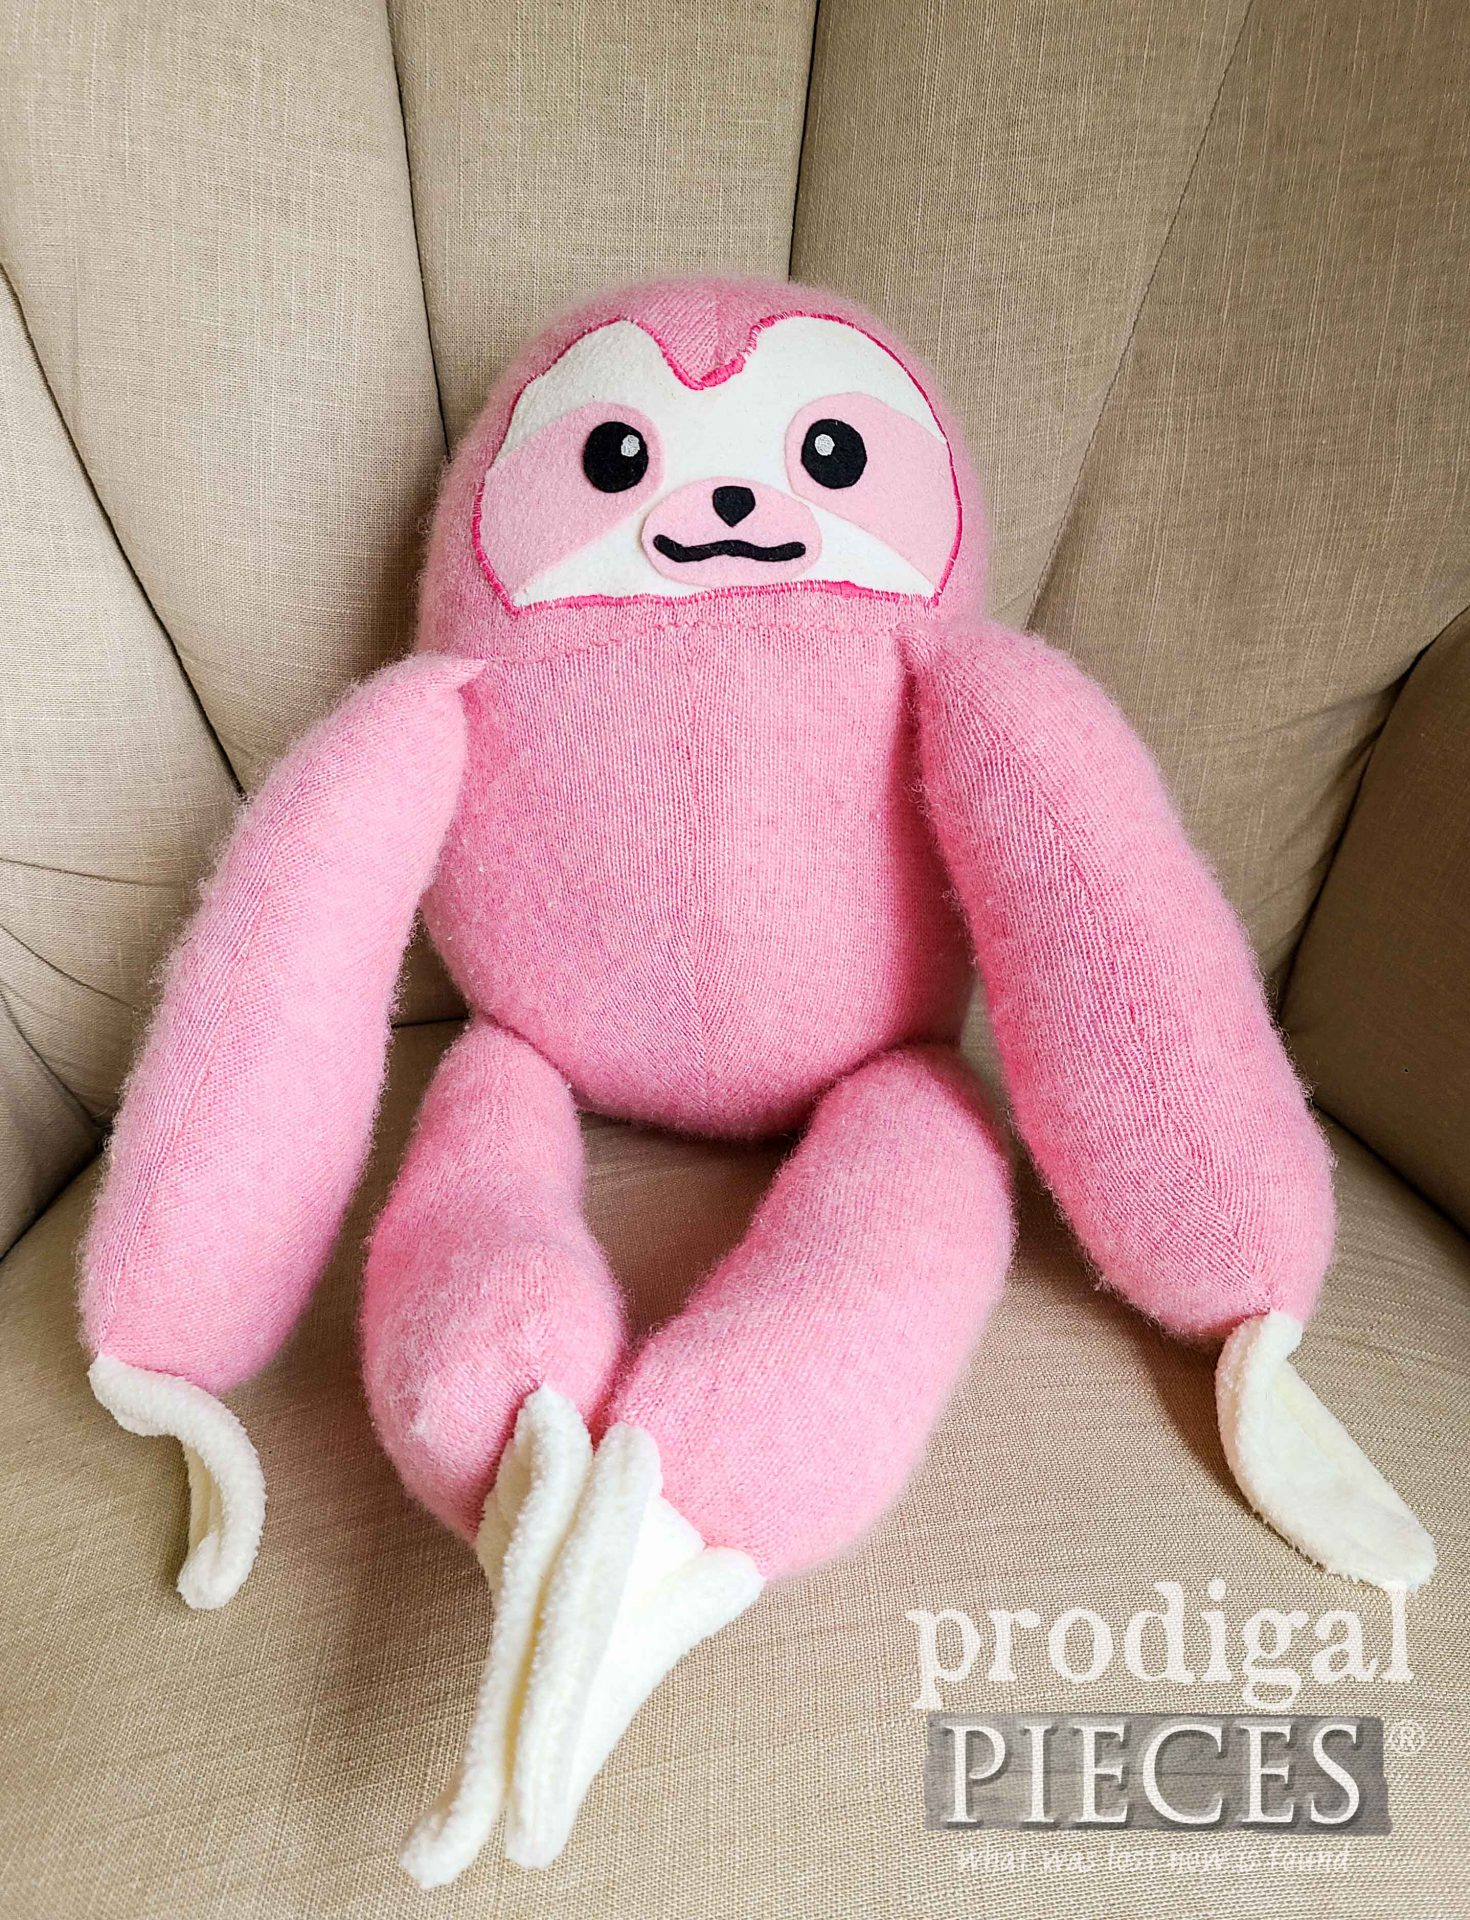 Adorable Pink Sloth Plushie Made from Upcycled Sweater ~ Refashion Fun by Larissa of Prodigal Pieces | prodigalpieces.com #prodigalpieces #toys #kids #gifts #pink